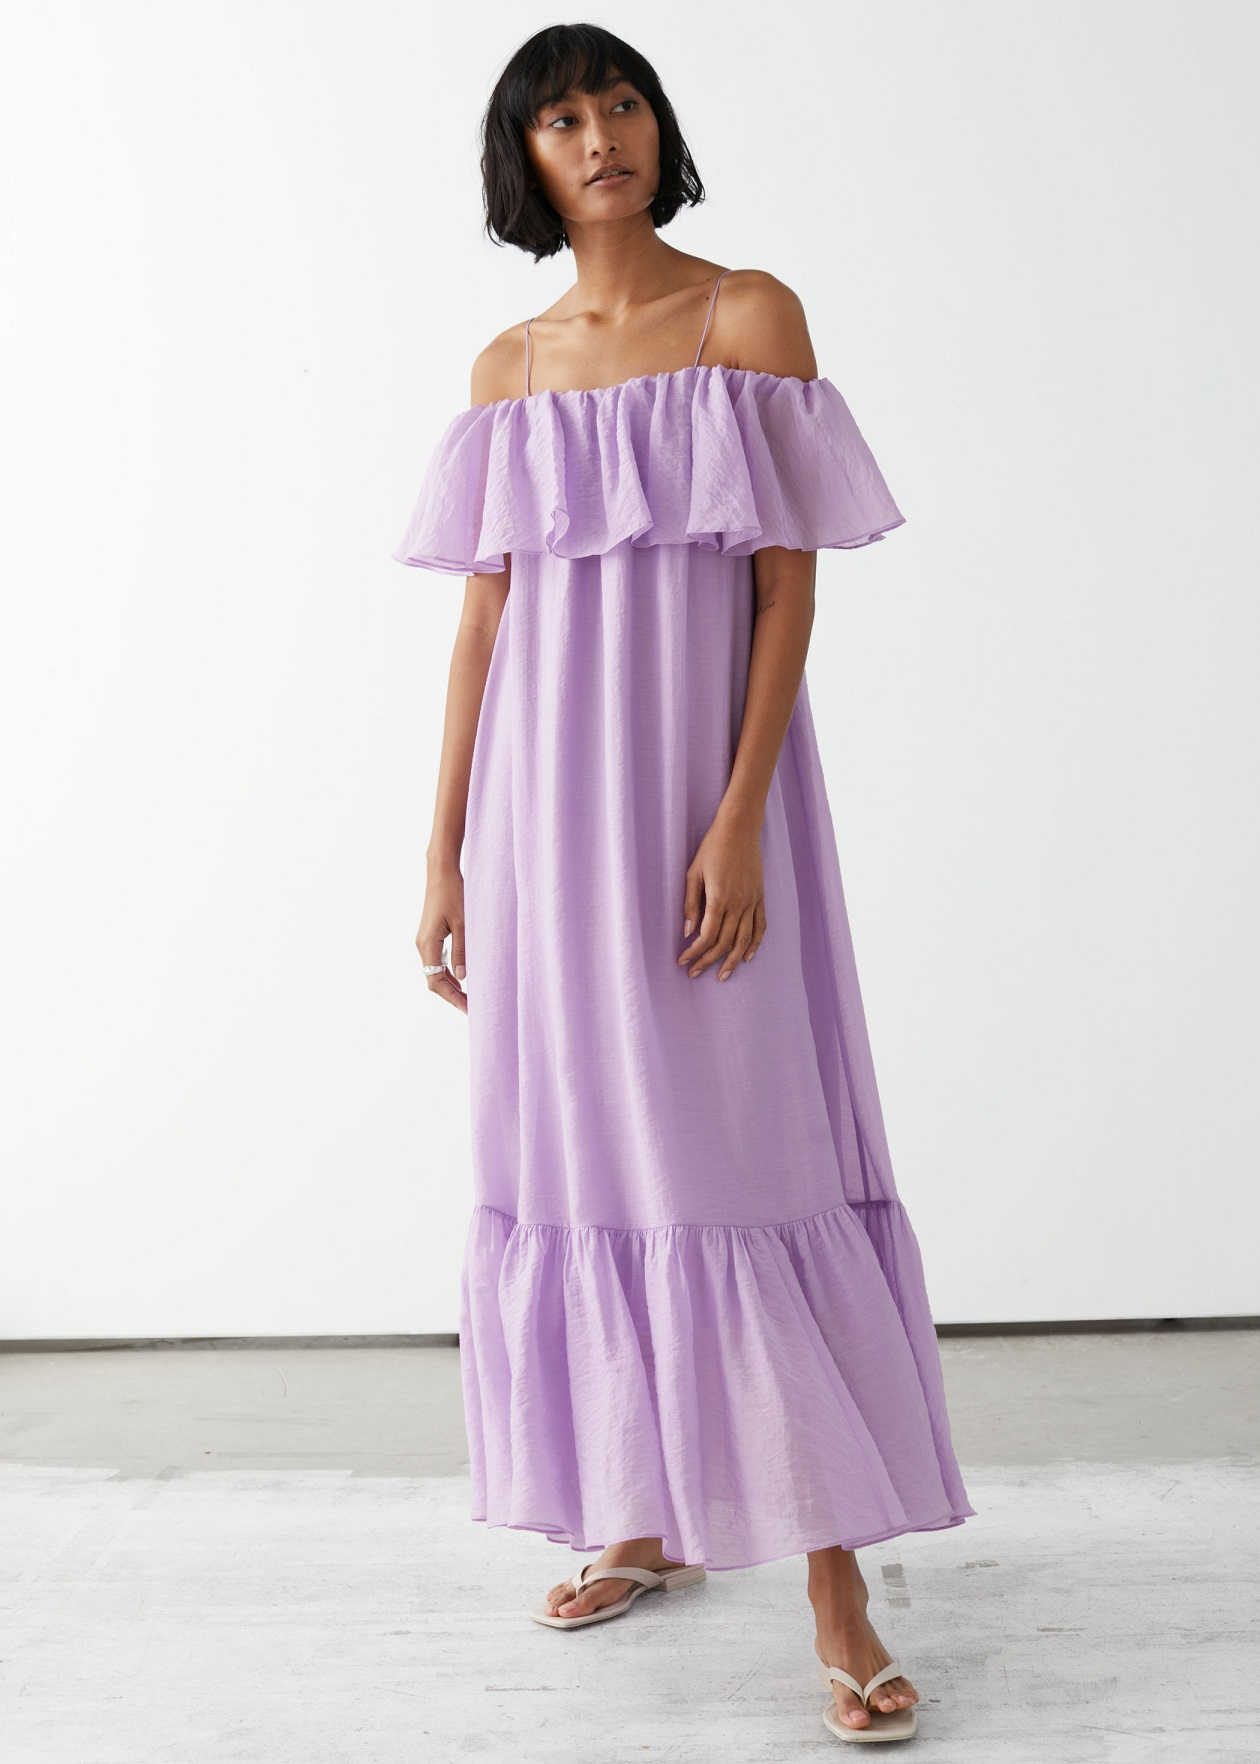 Other Stories Frill Maxi Dress